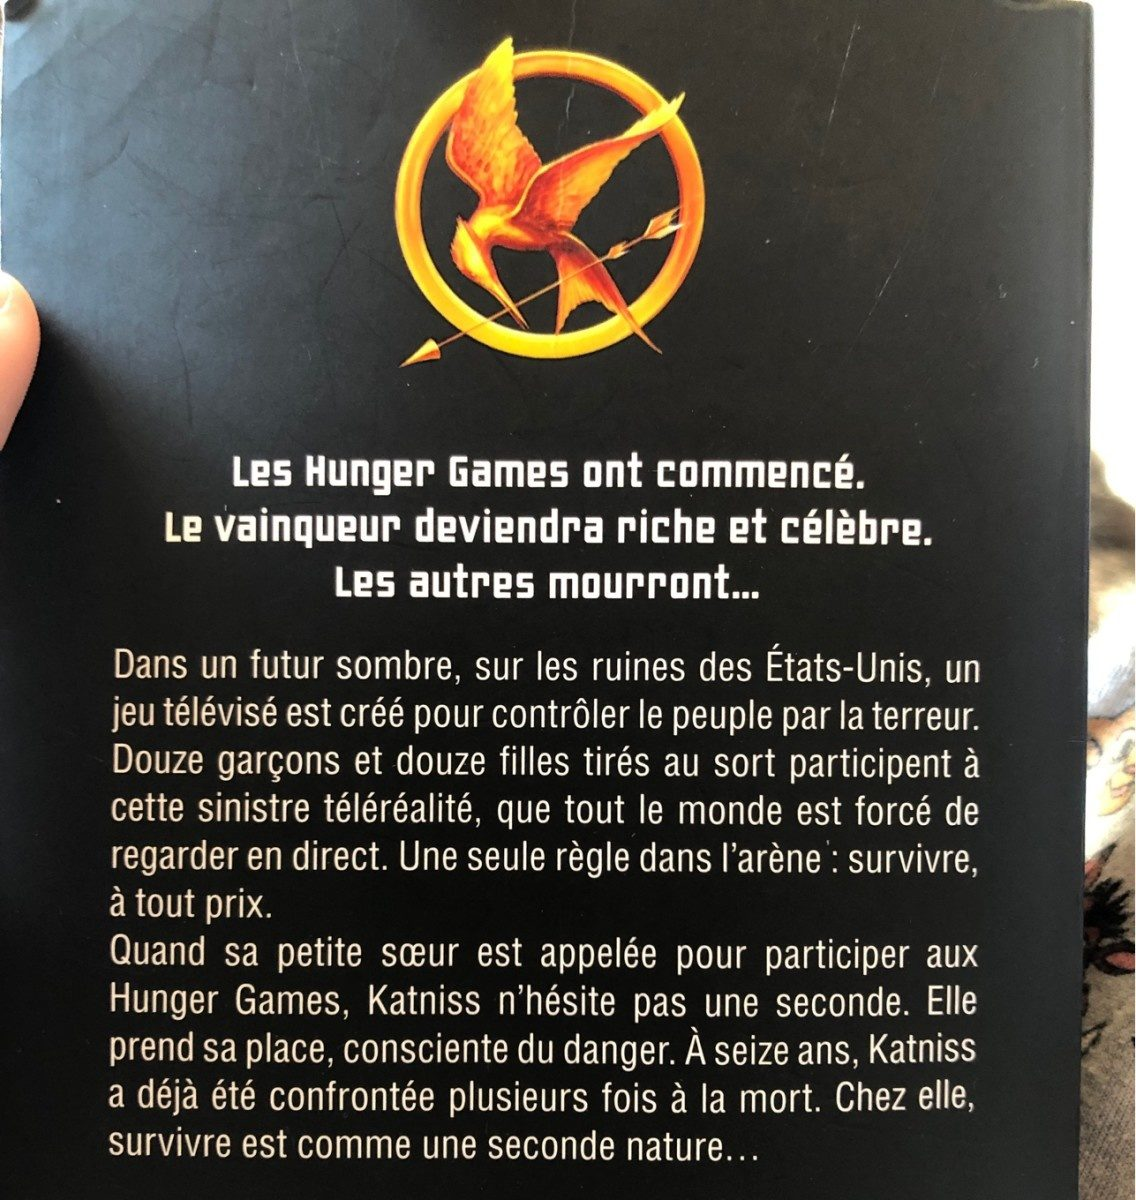 Hunger games - Ingredients